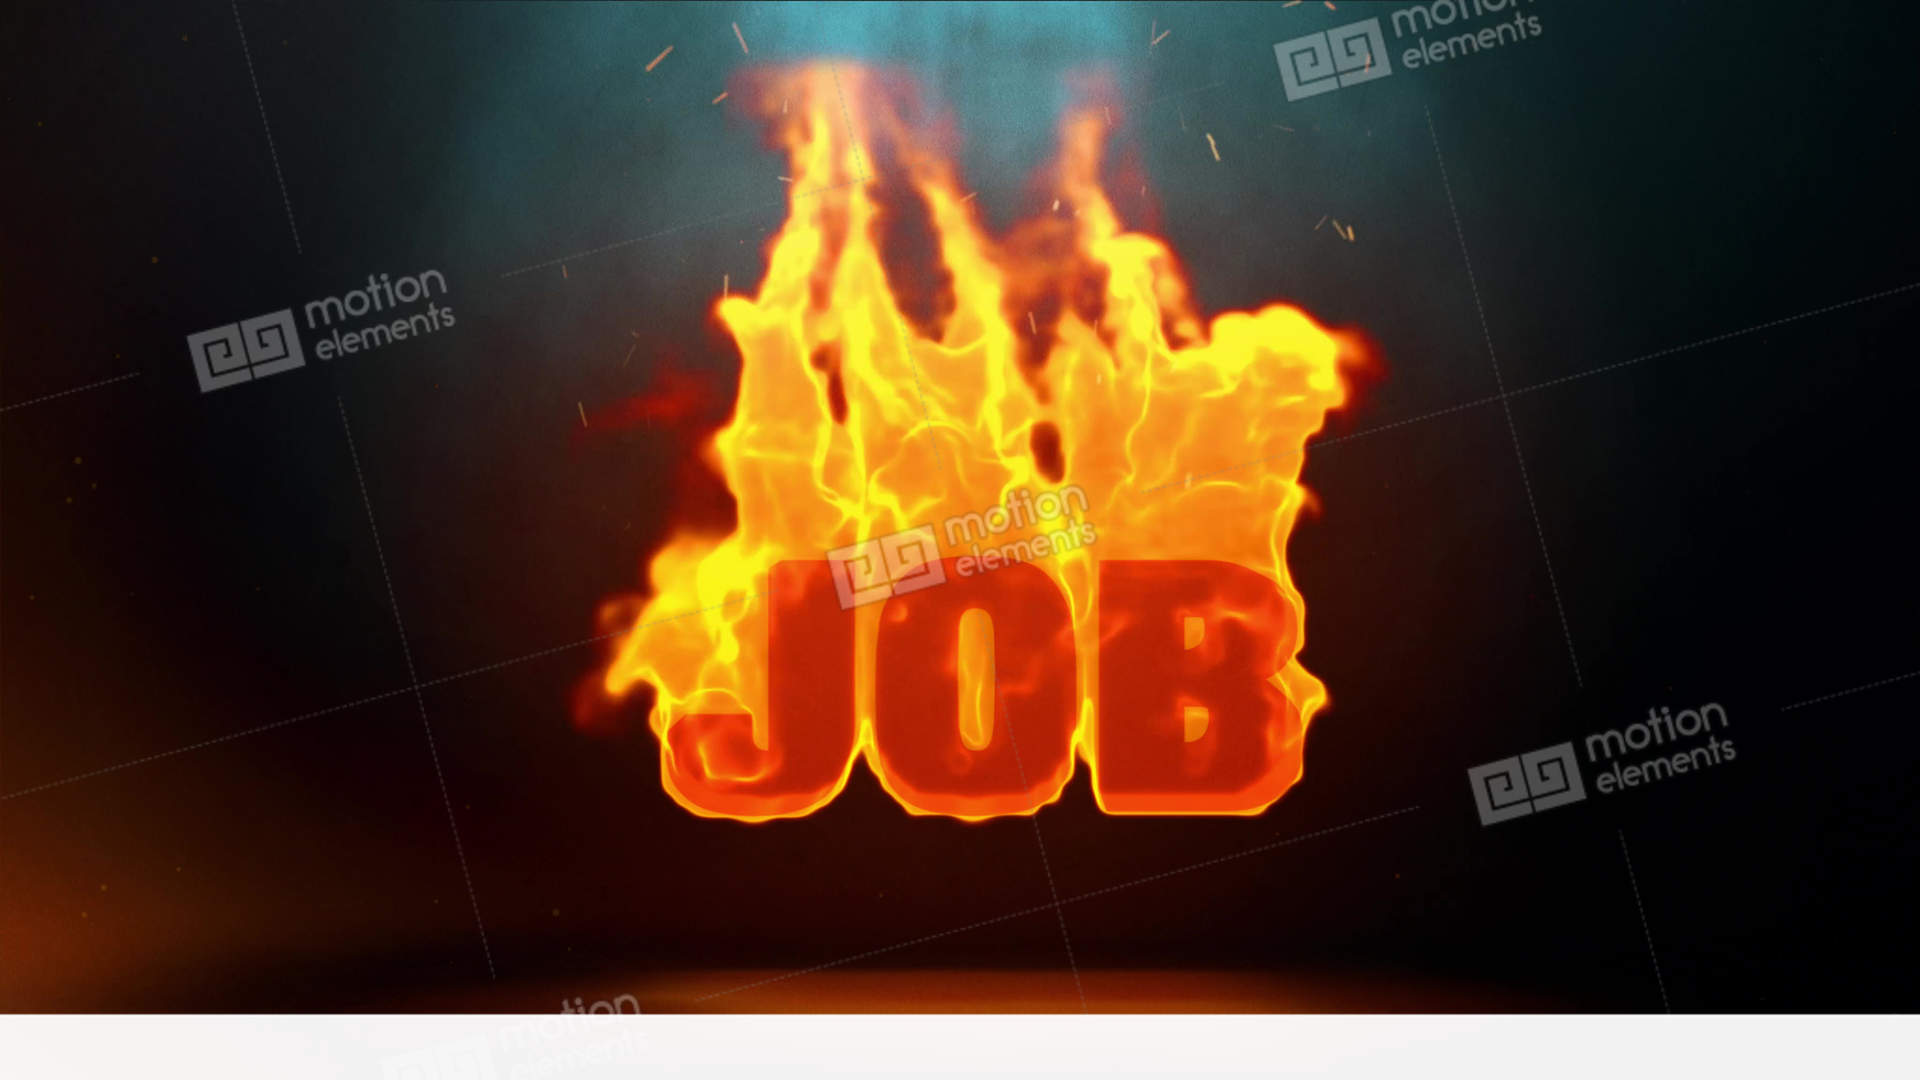 JOB Word Hot Burning On Realistic Fire Flames Sparks Continuous Loop ...